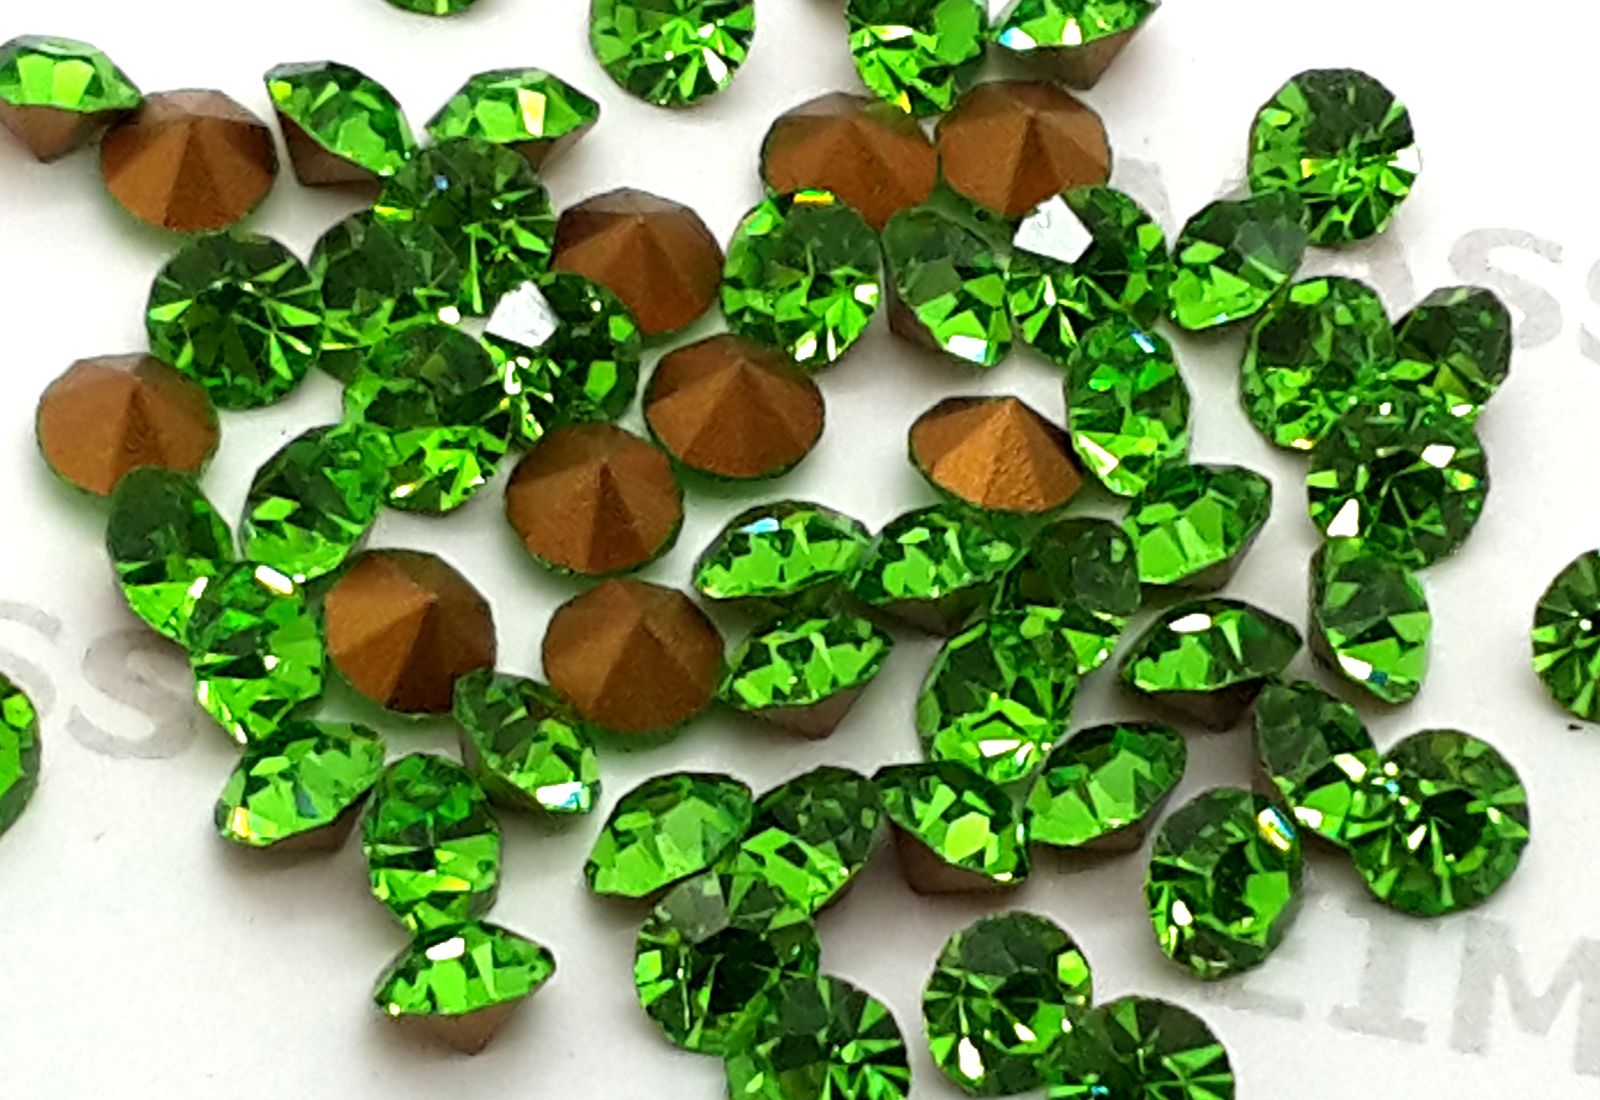 Peridot Lime Green Foiled Chatons Eimass Point Back Crystals